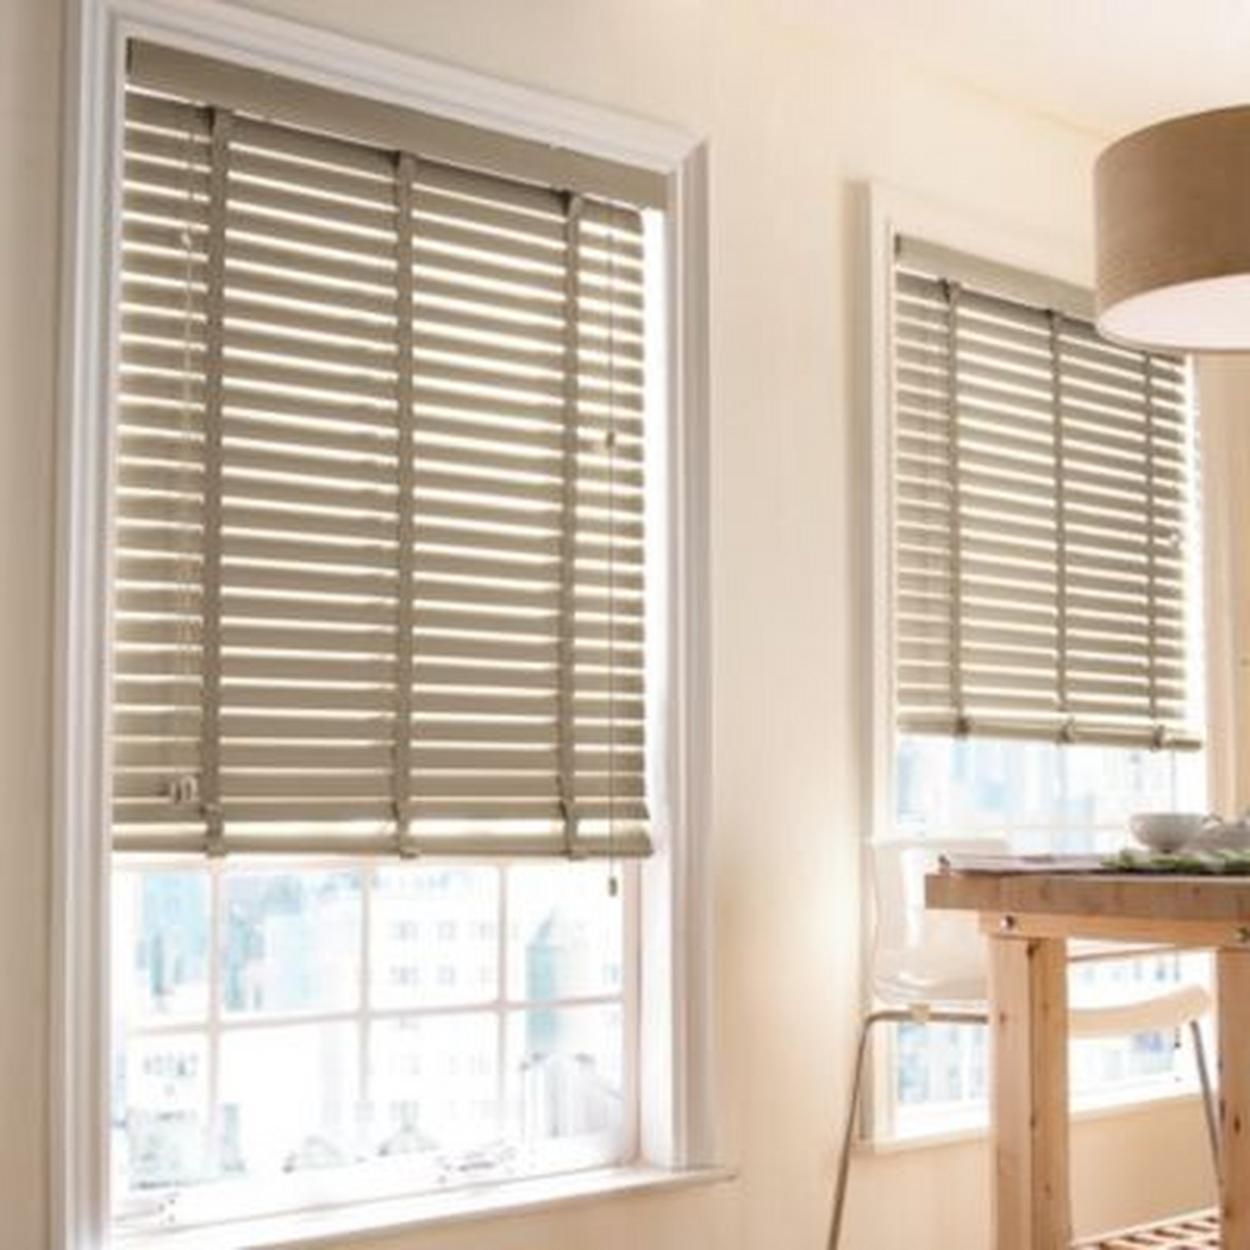 Ready Made 2 Quot Taped Pvc Mini Blinds For 107 98 Home